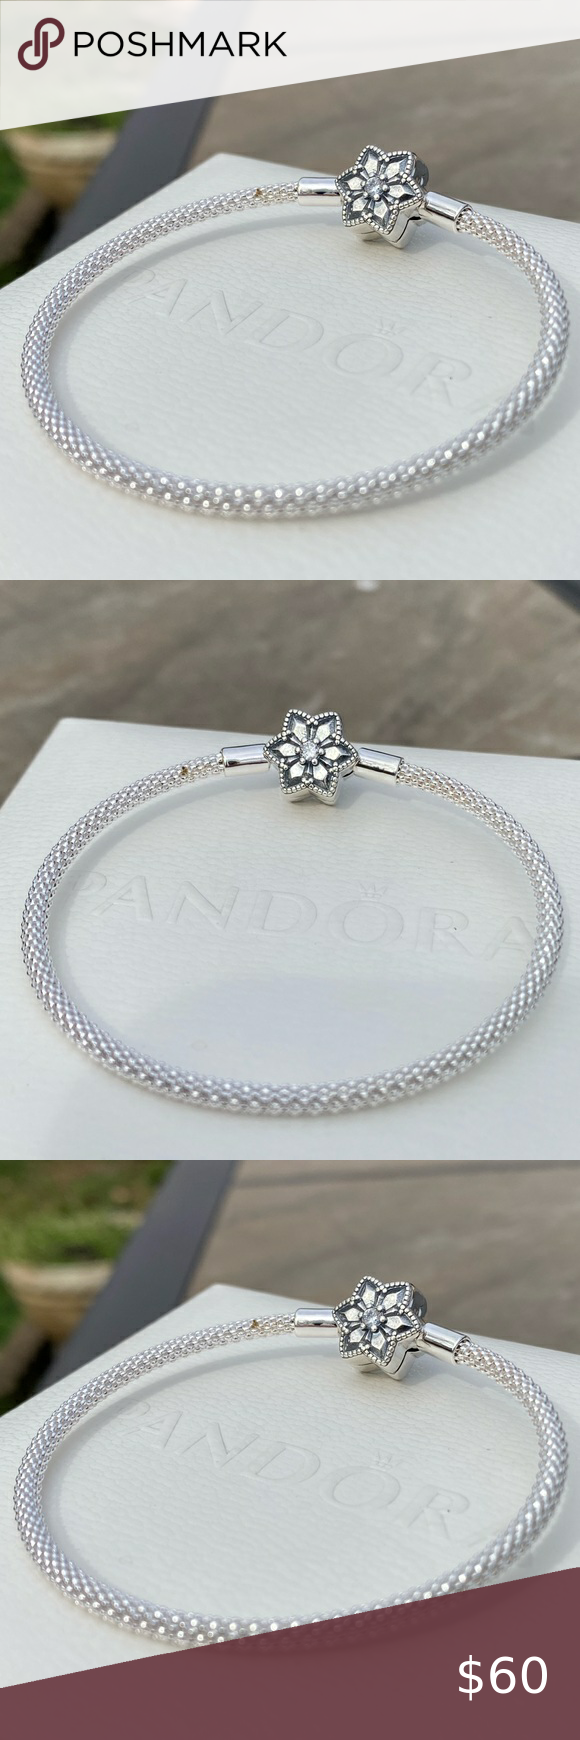 Pandora Jewelry 60% OFF!> Pandora Bright Snowflake Bracelet Authentic Pandora Bracelet This charming bracelet from PANDORA features a graceful bright snowflake charm on a 6.7-inch mesh bracelet fashioned in lustrous PANDORA Silver. The message Shine Bright decorates the back of the charm to complete the look. The bracelet secures in place with a PANDORA clasp. Item 598616C01-21 Pandora Jewelry Bracelets #Jewelry #PANDORA #style #Accessories #shopping #styles #outfit #pretty #girl #girl...